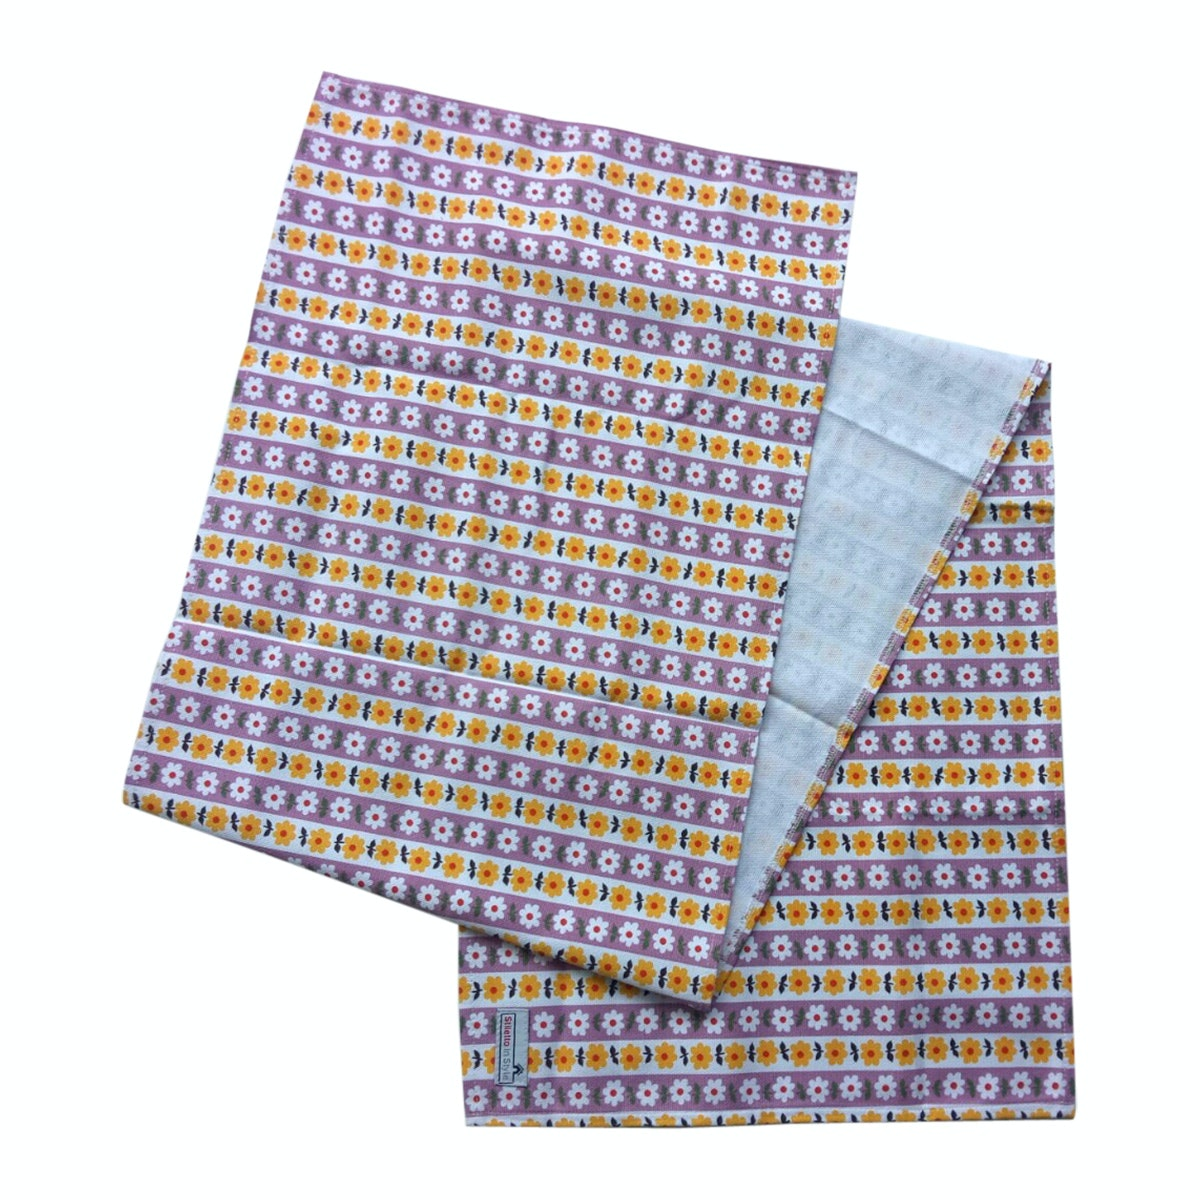 Stiletto Living Table Runner / Taplak Meja - Bunga Rampai Kuning